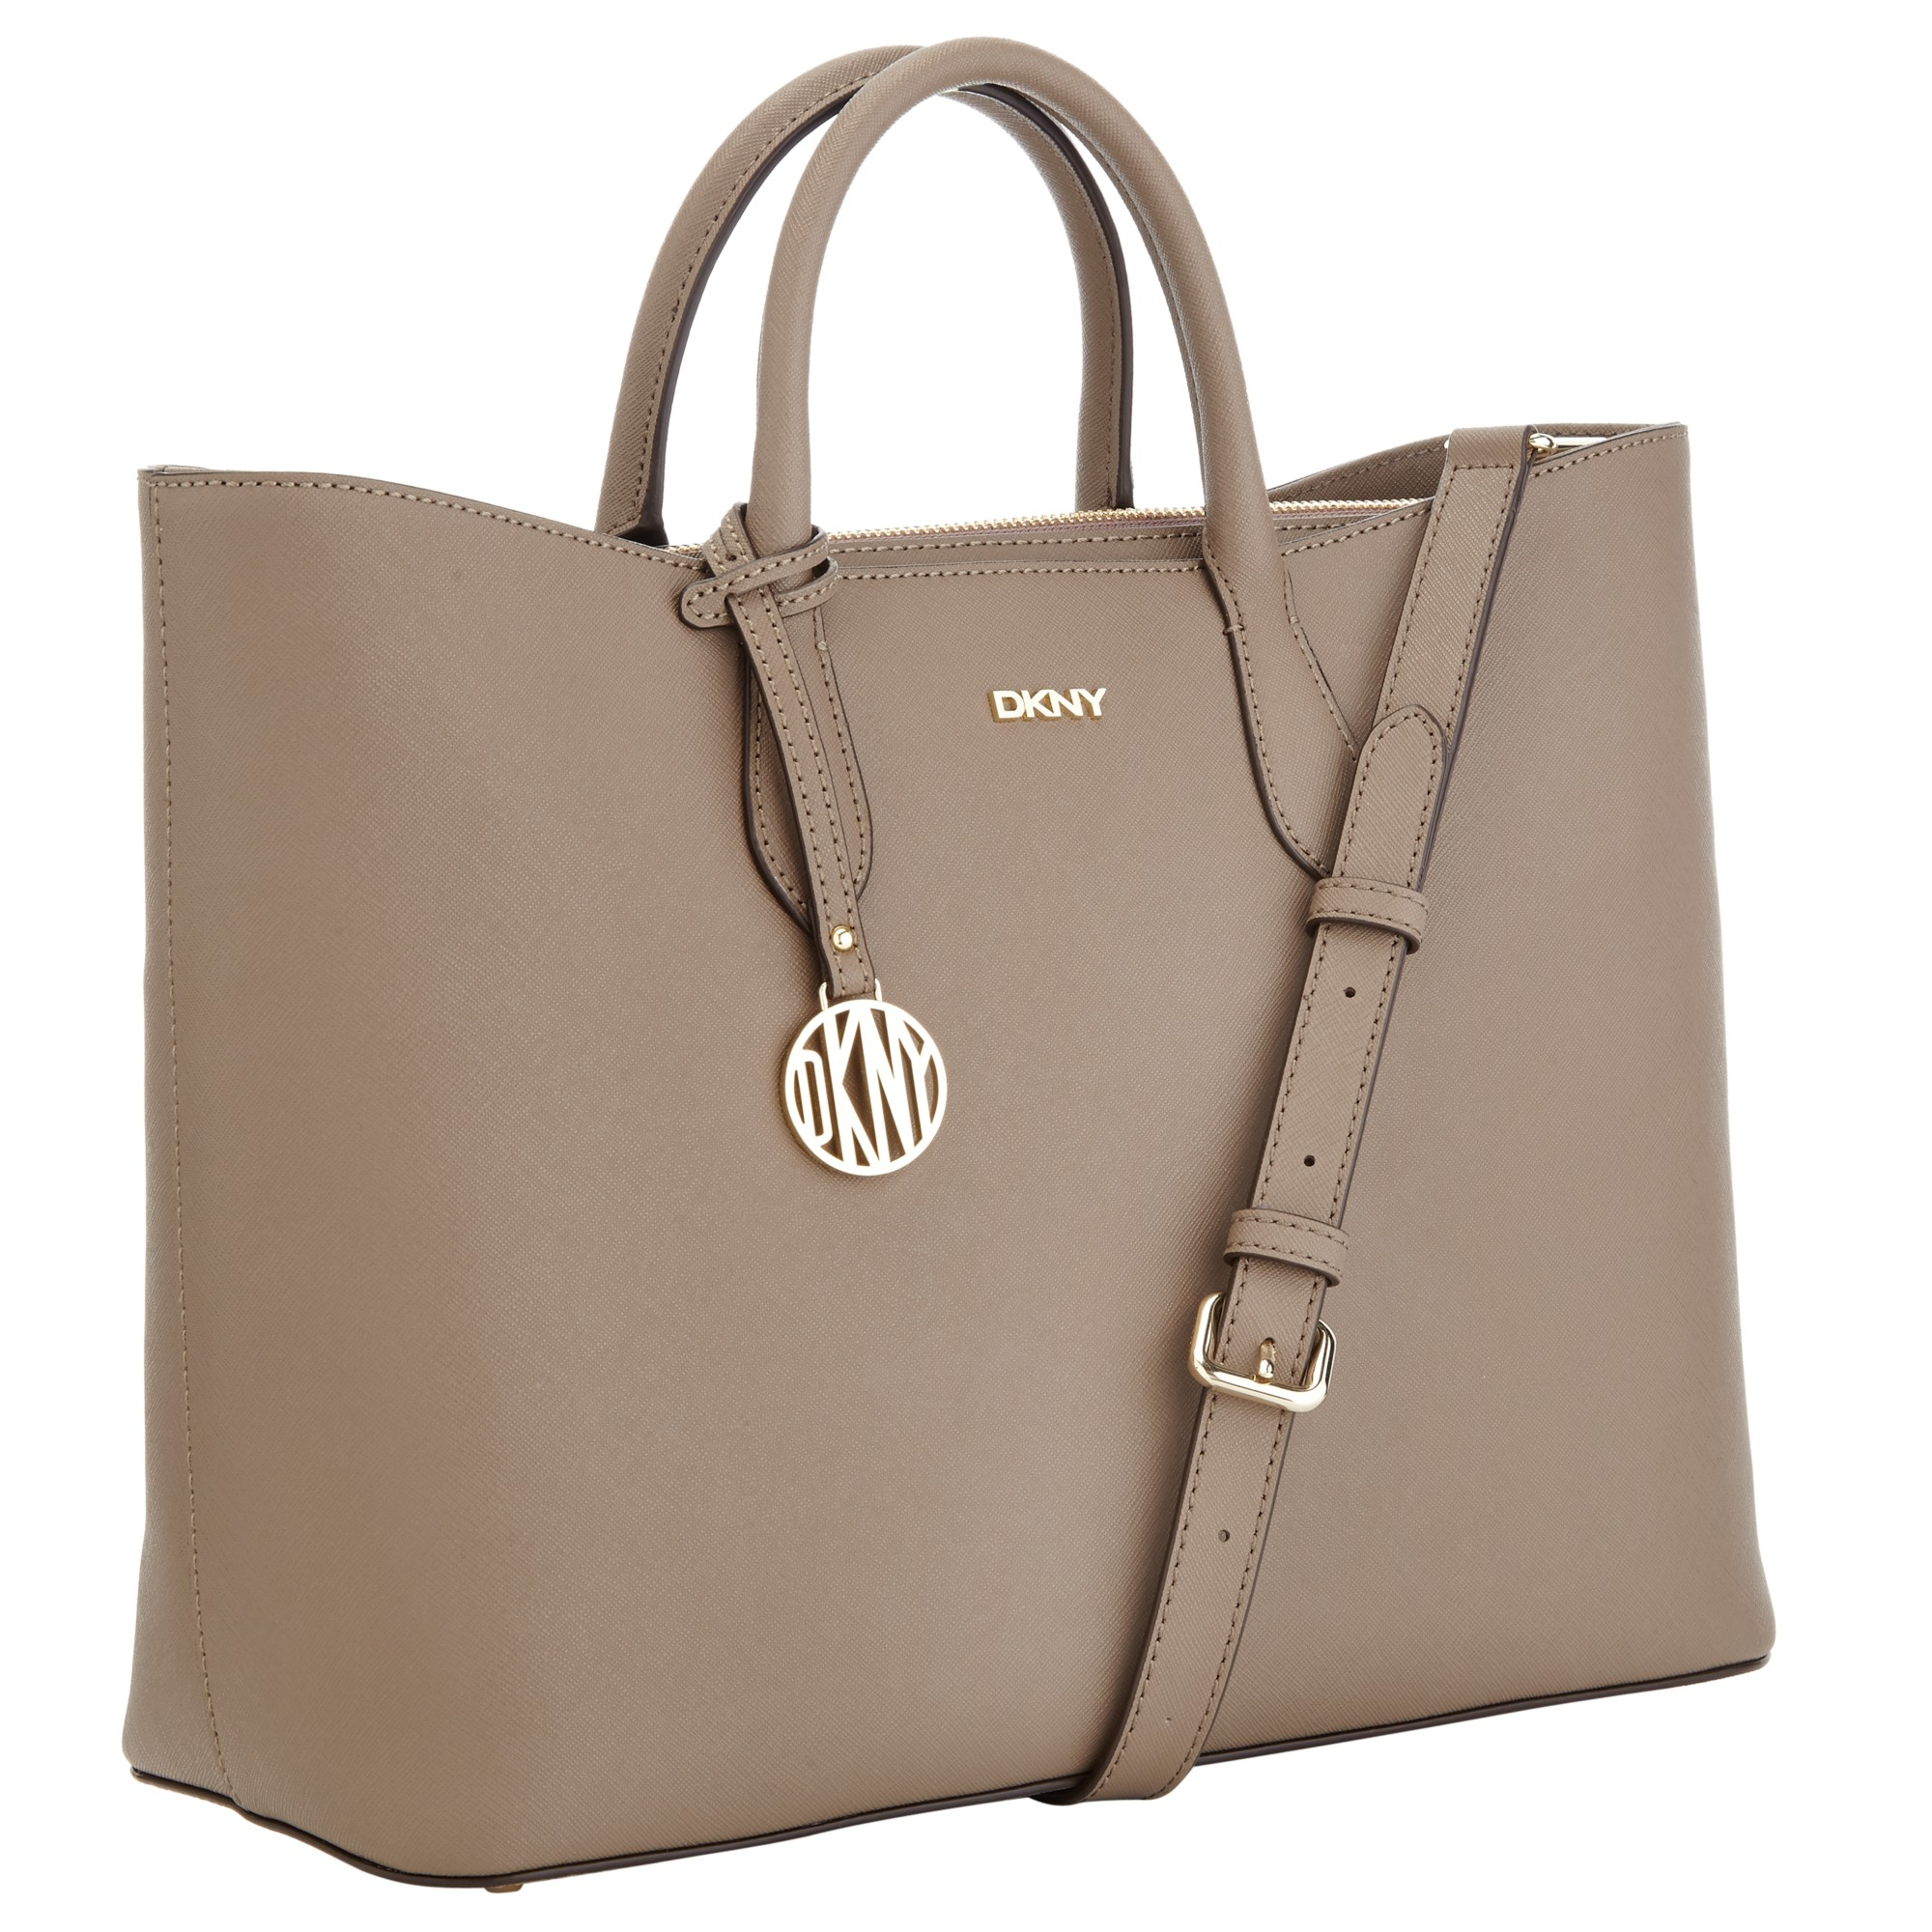 dkny bryant park saffiano top zip tote bag in beige sand lyst. Black Bedroom Furniture Sets. Home Design Ideas